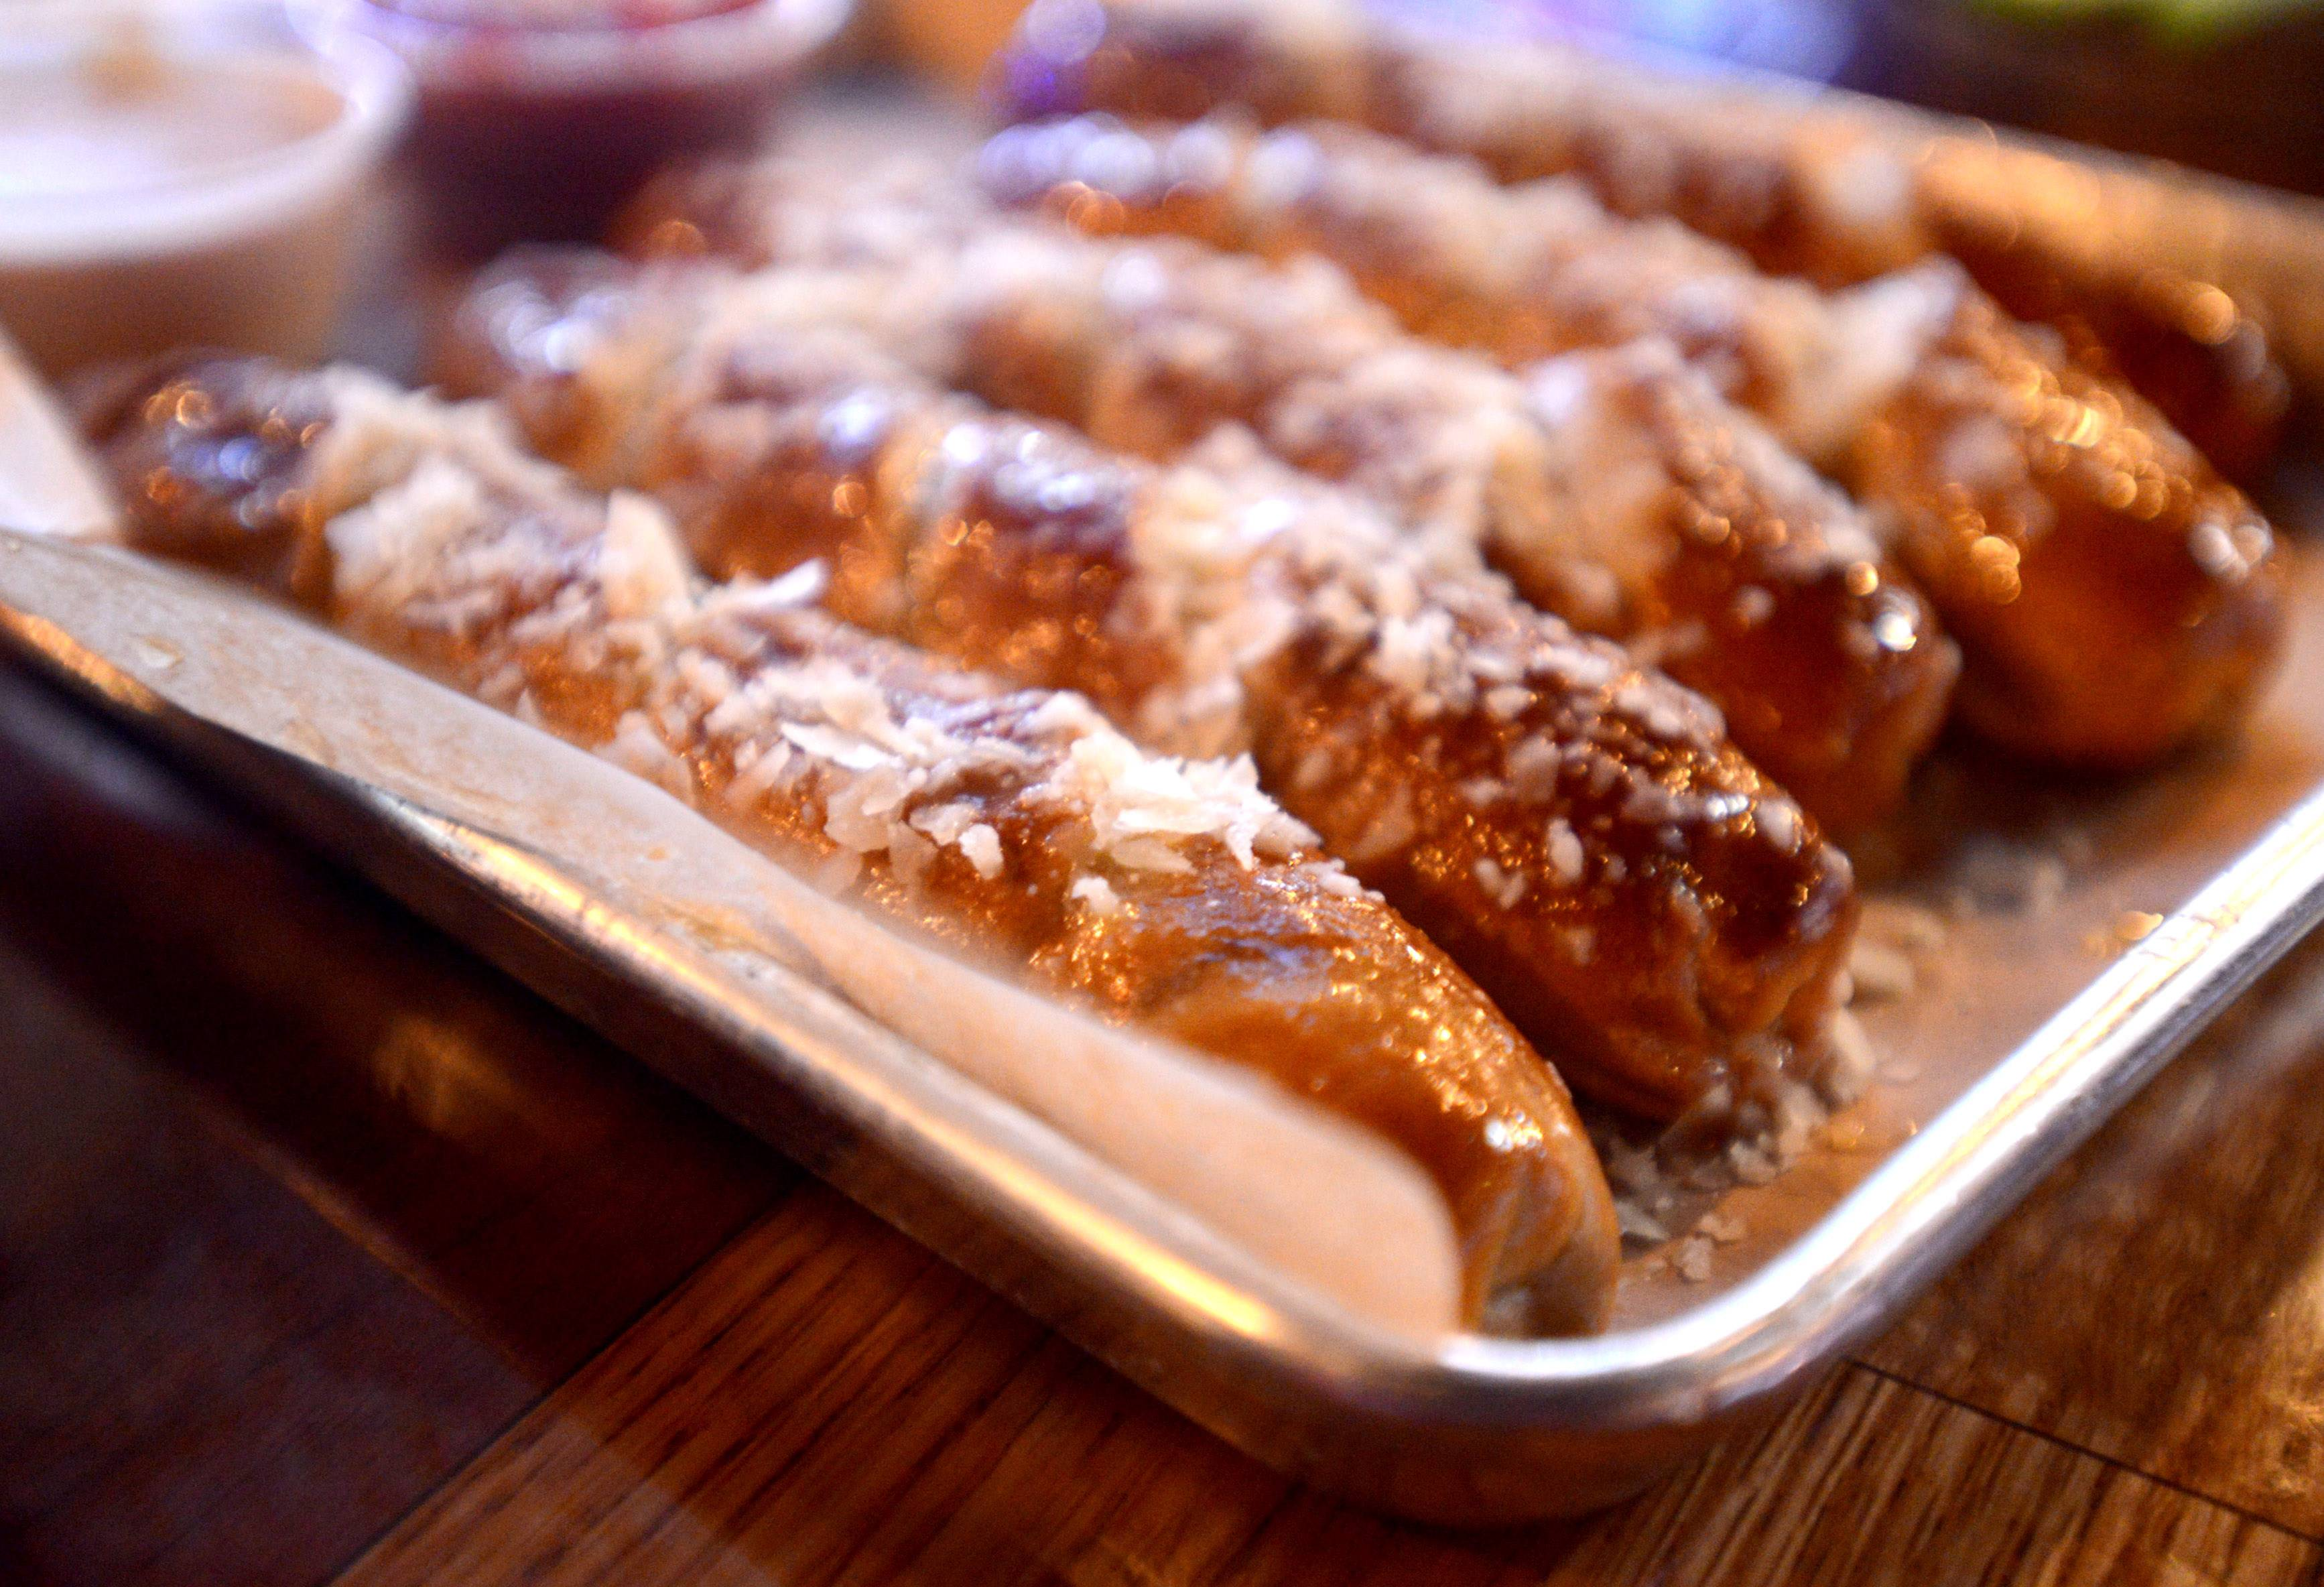 Pretzel sticks make a hearty starter at M T Barrels.